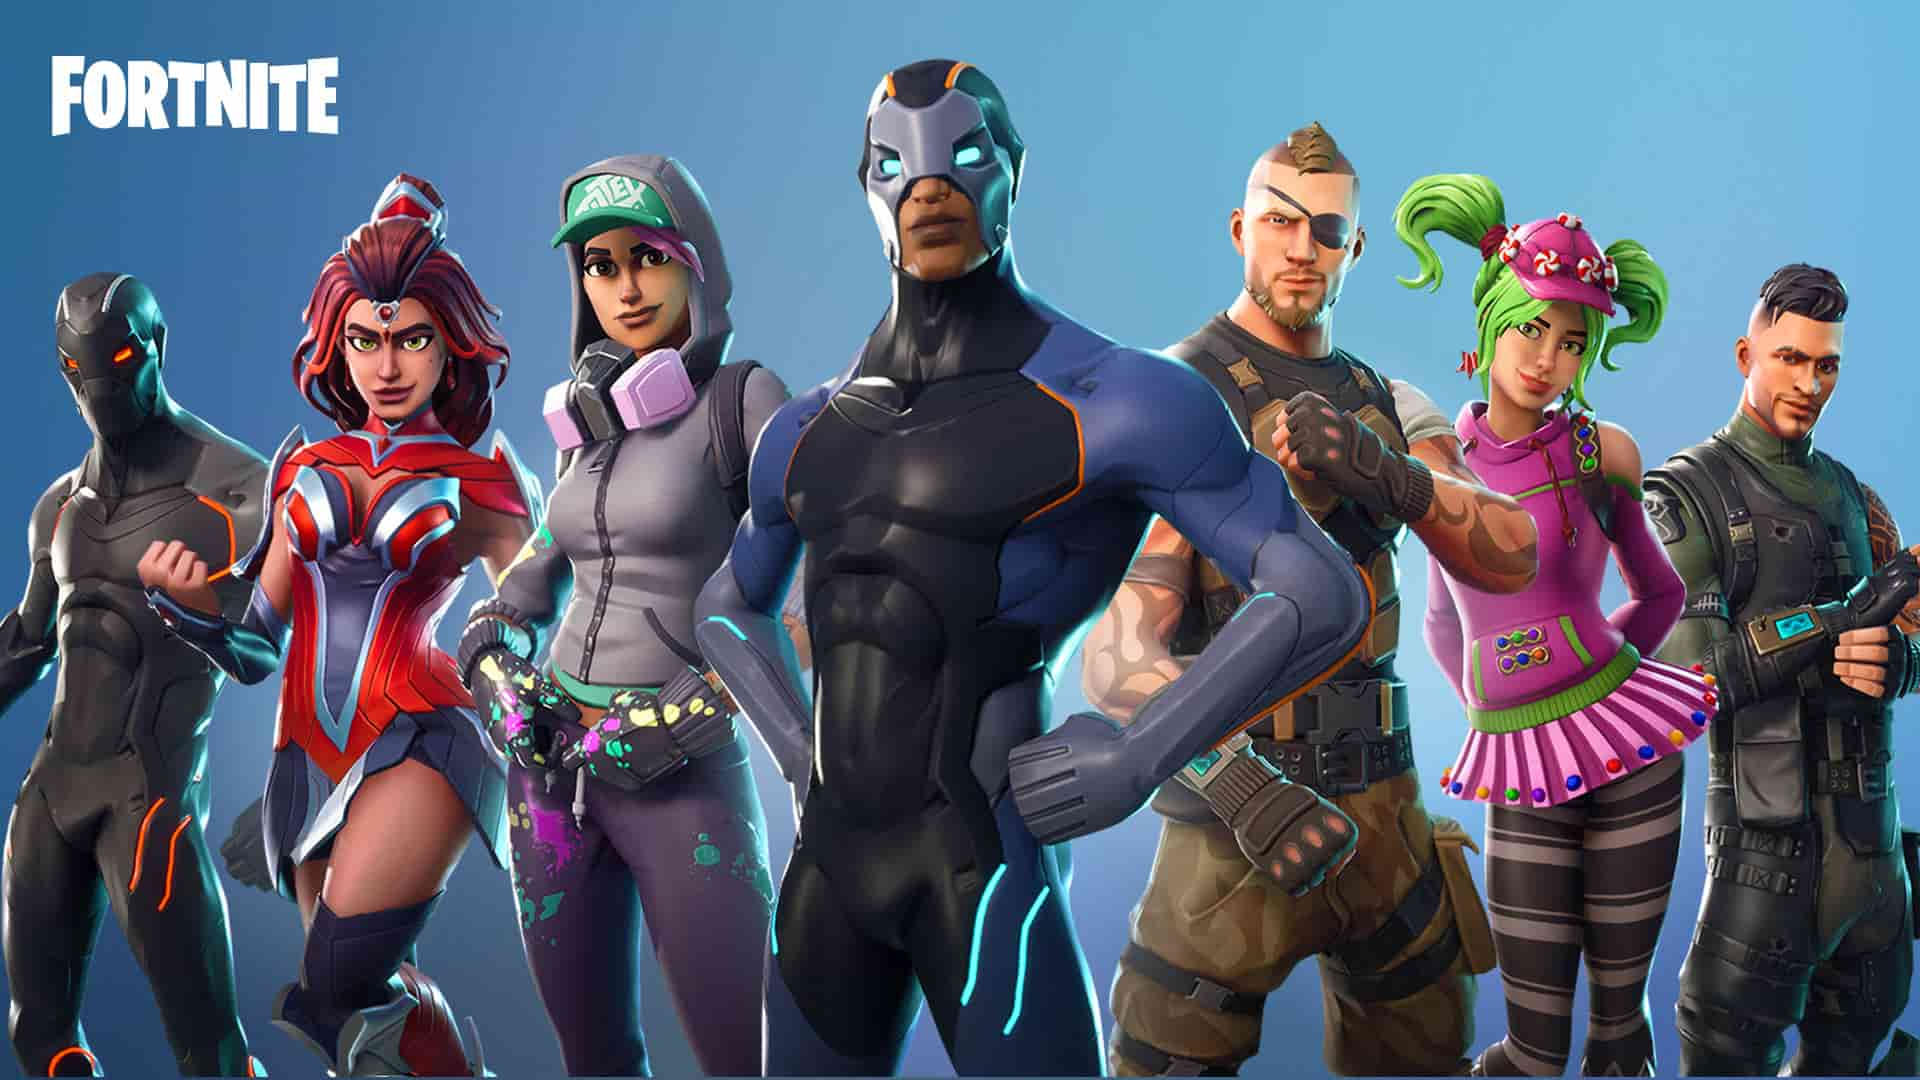 Fortnite 4.3 Content Update